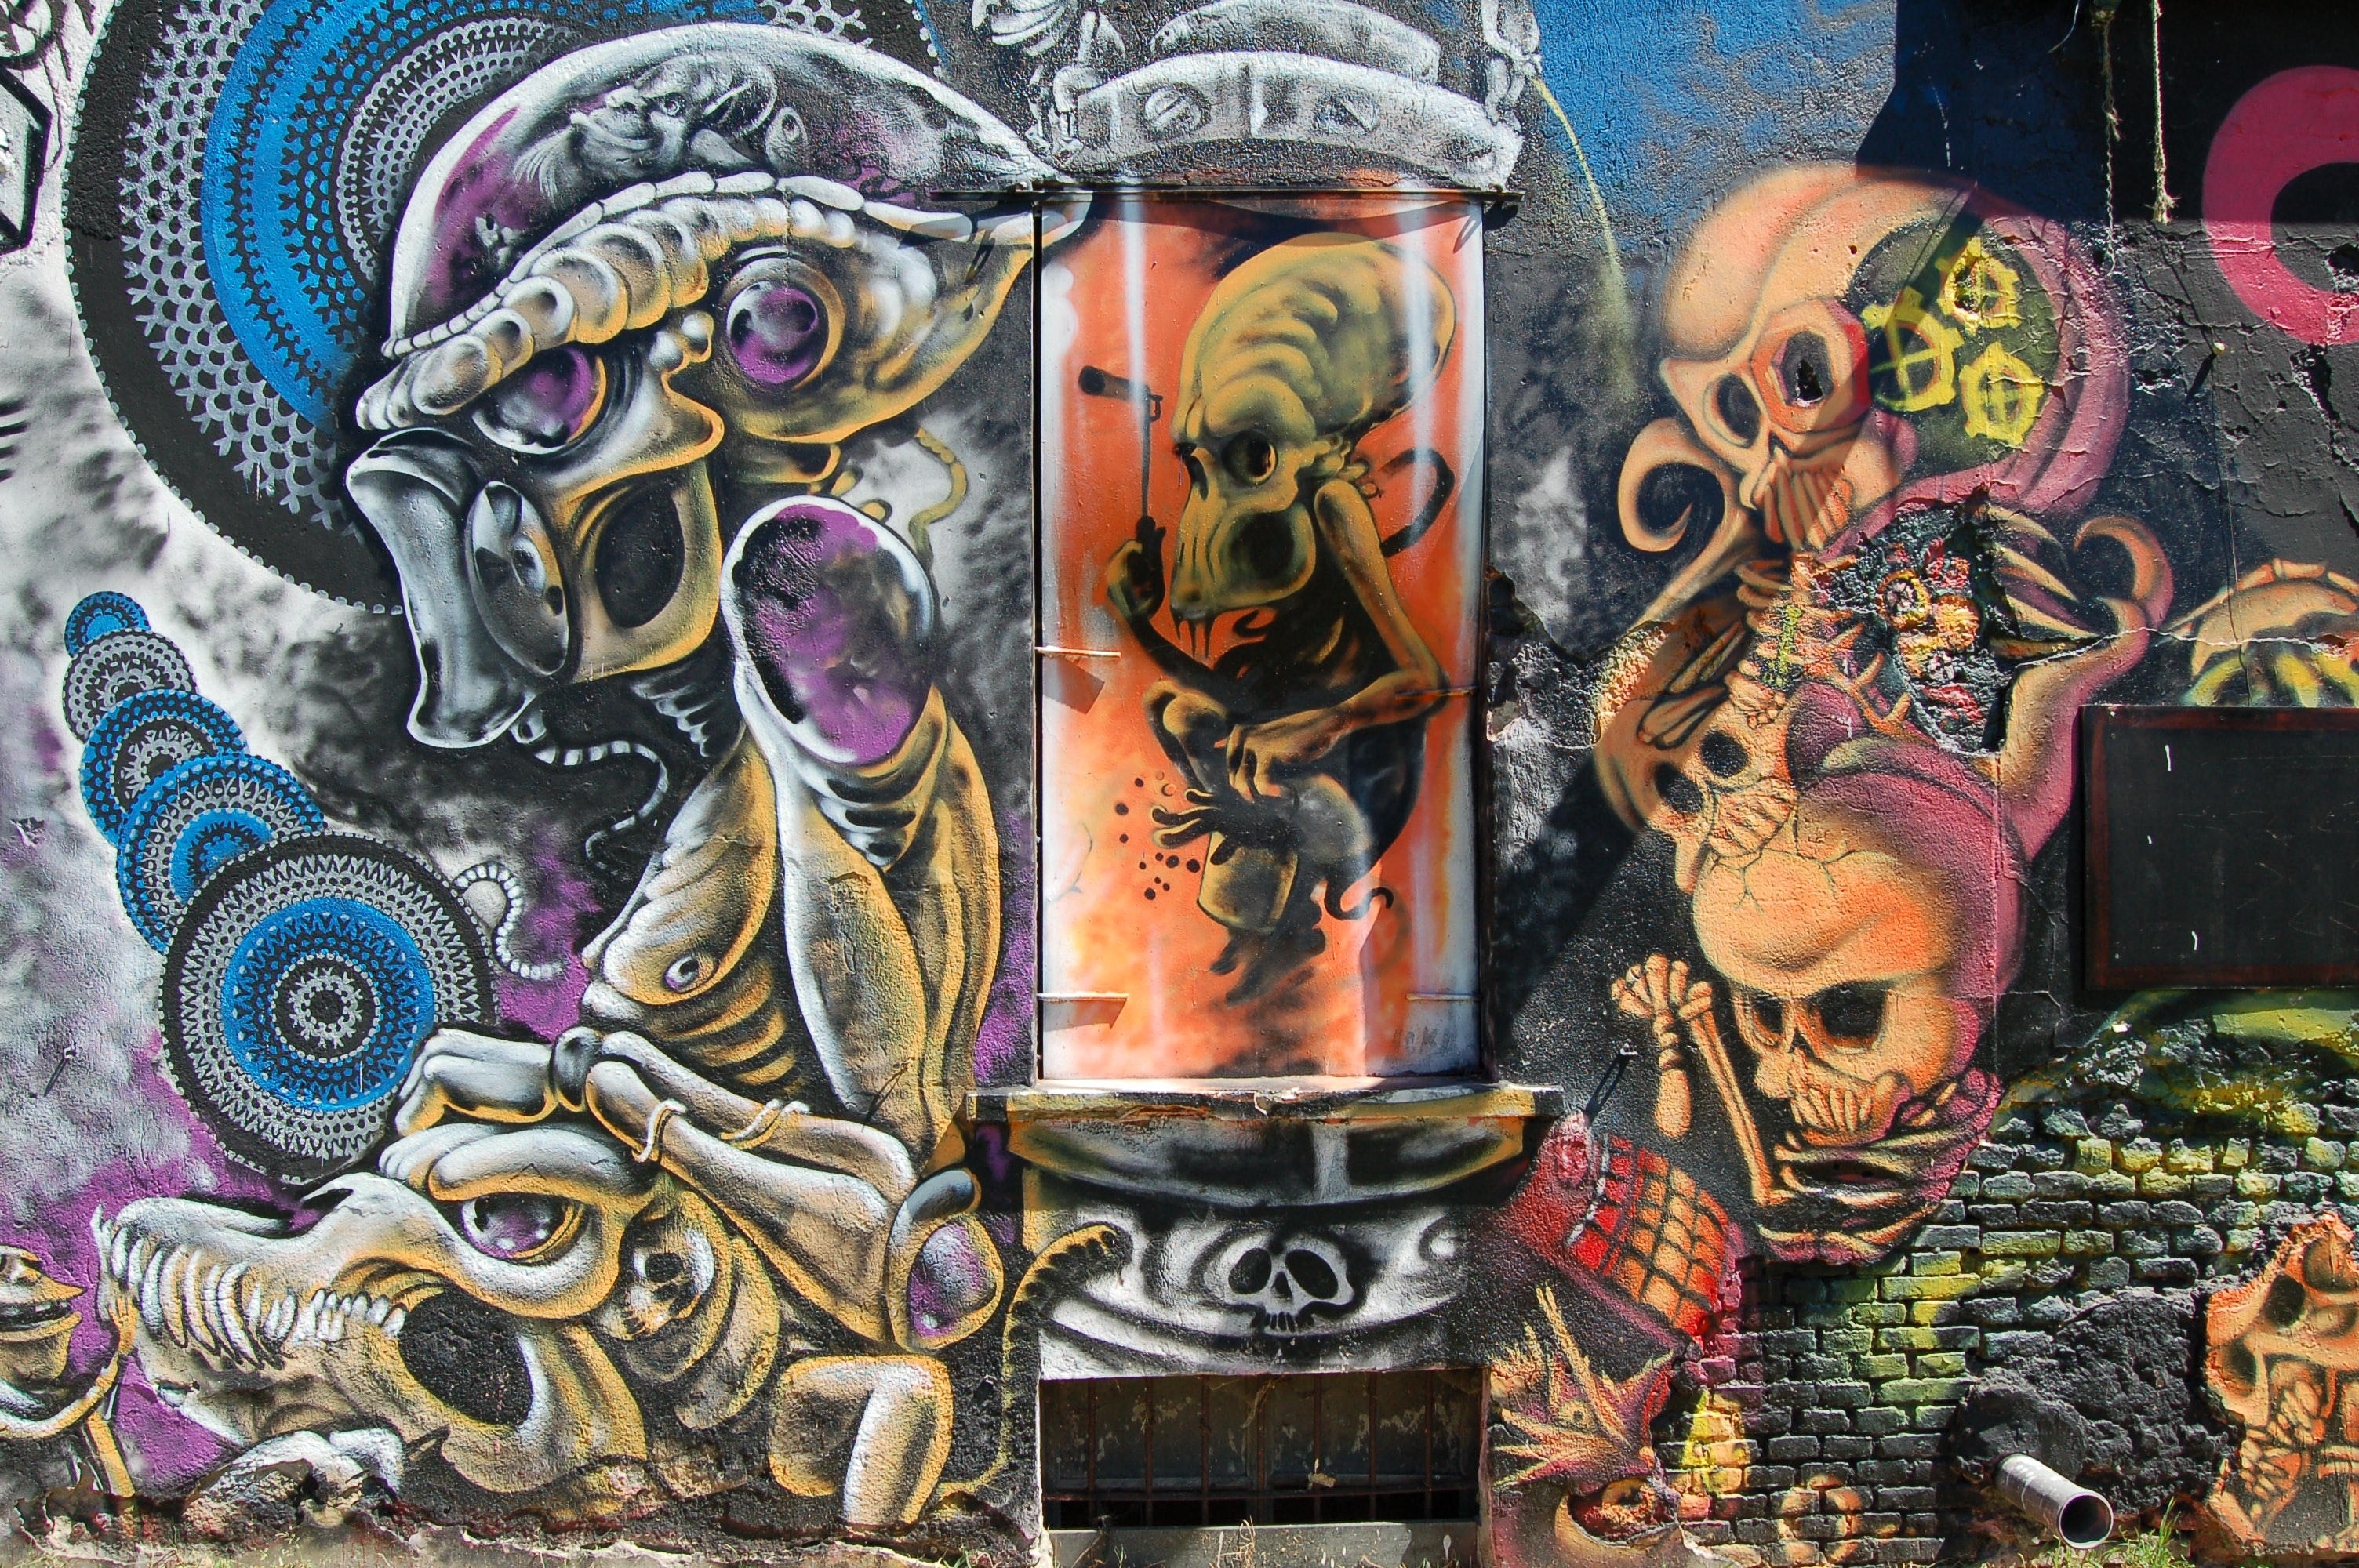 A wall mural with skeletons and other weird creatures.